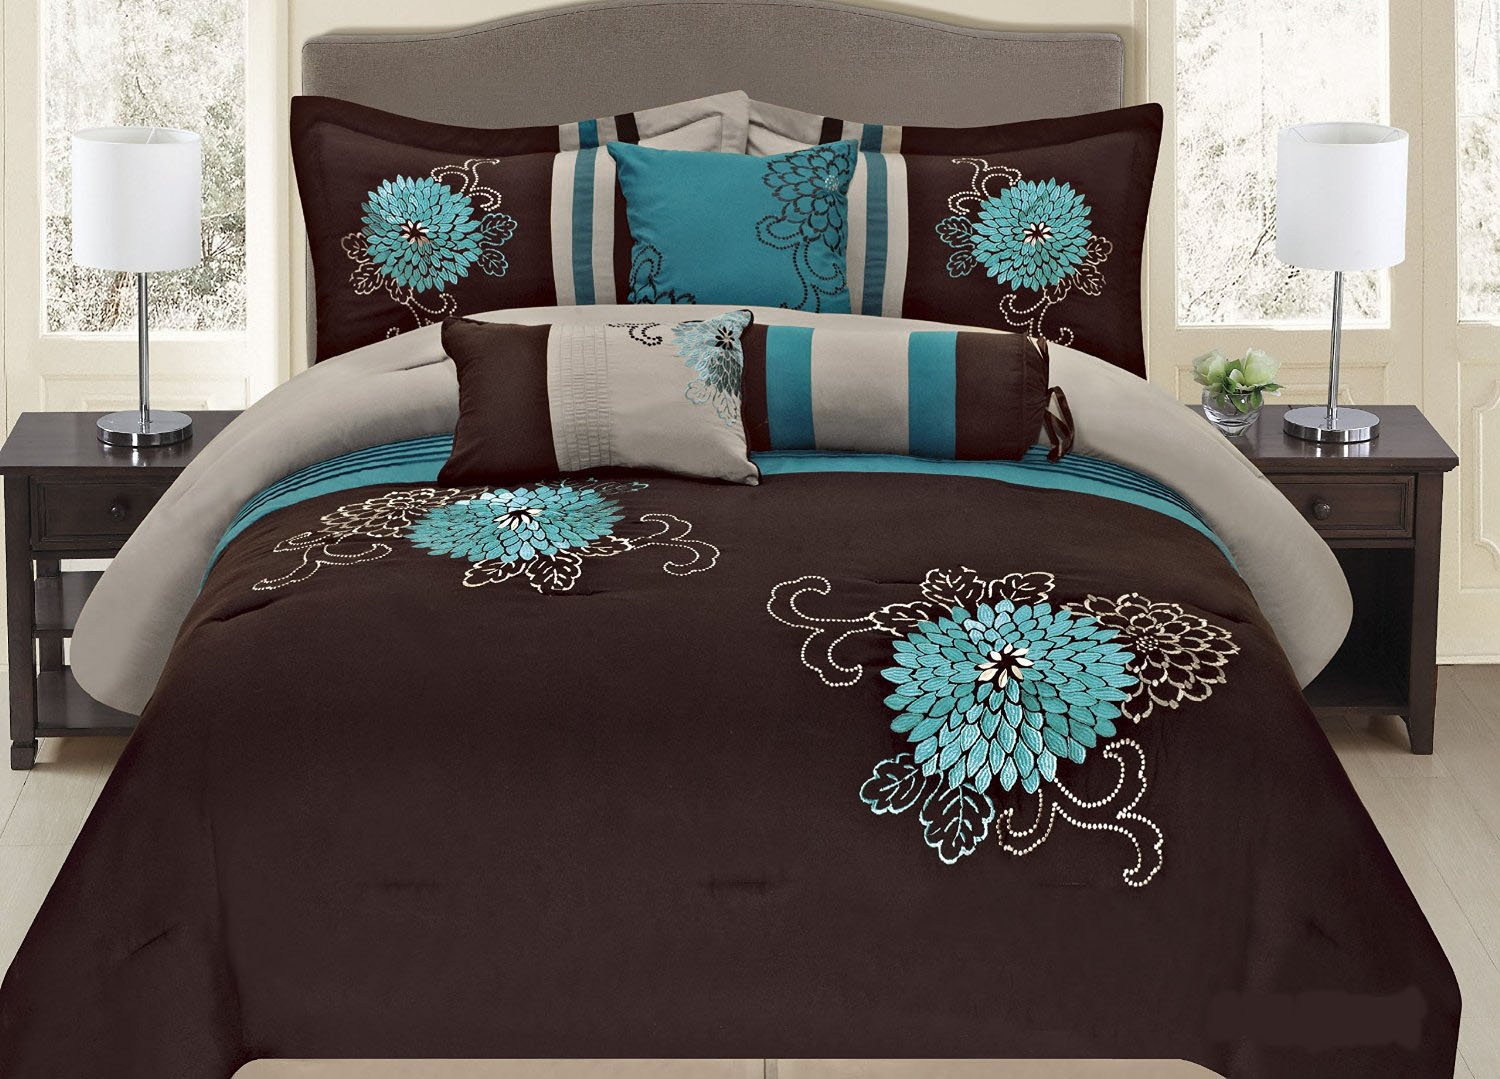 7-pc Embroidery Bedding Brown Turquoise or Purple Lavender Comforter Set